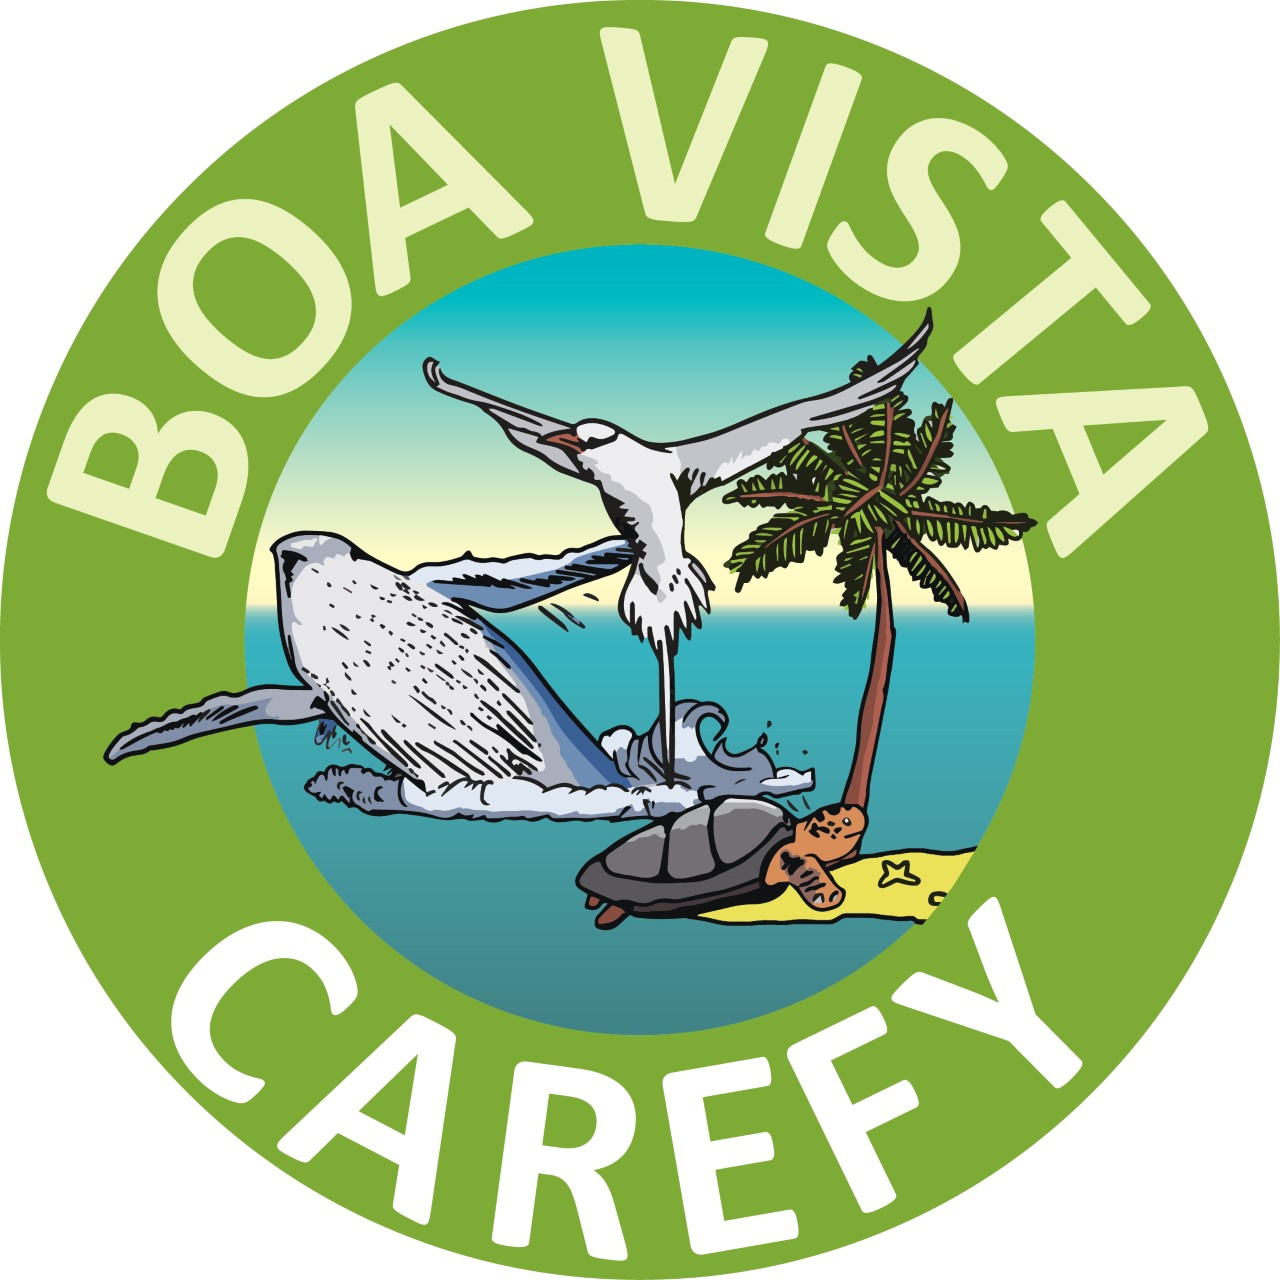 Boa Vista Carefy